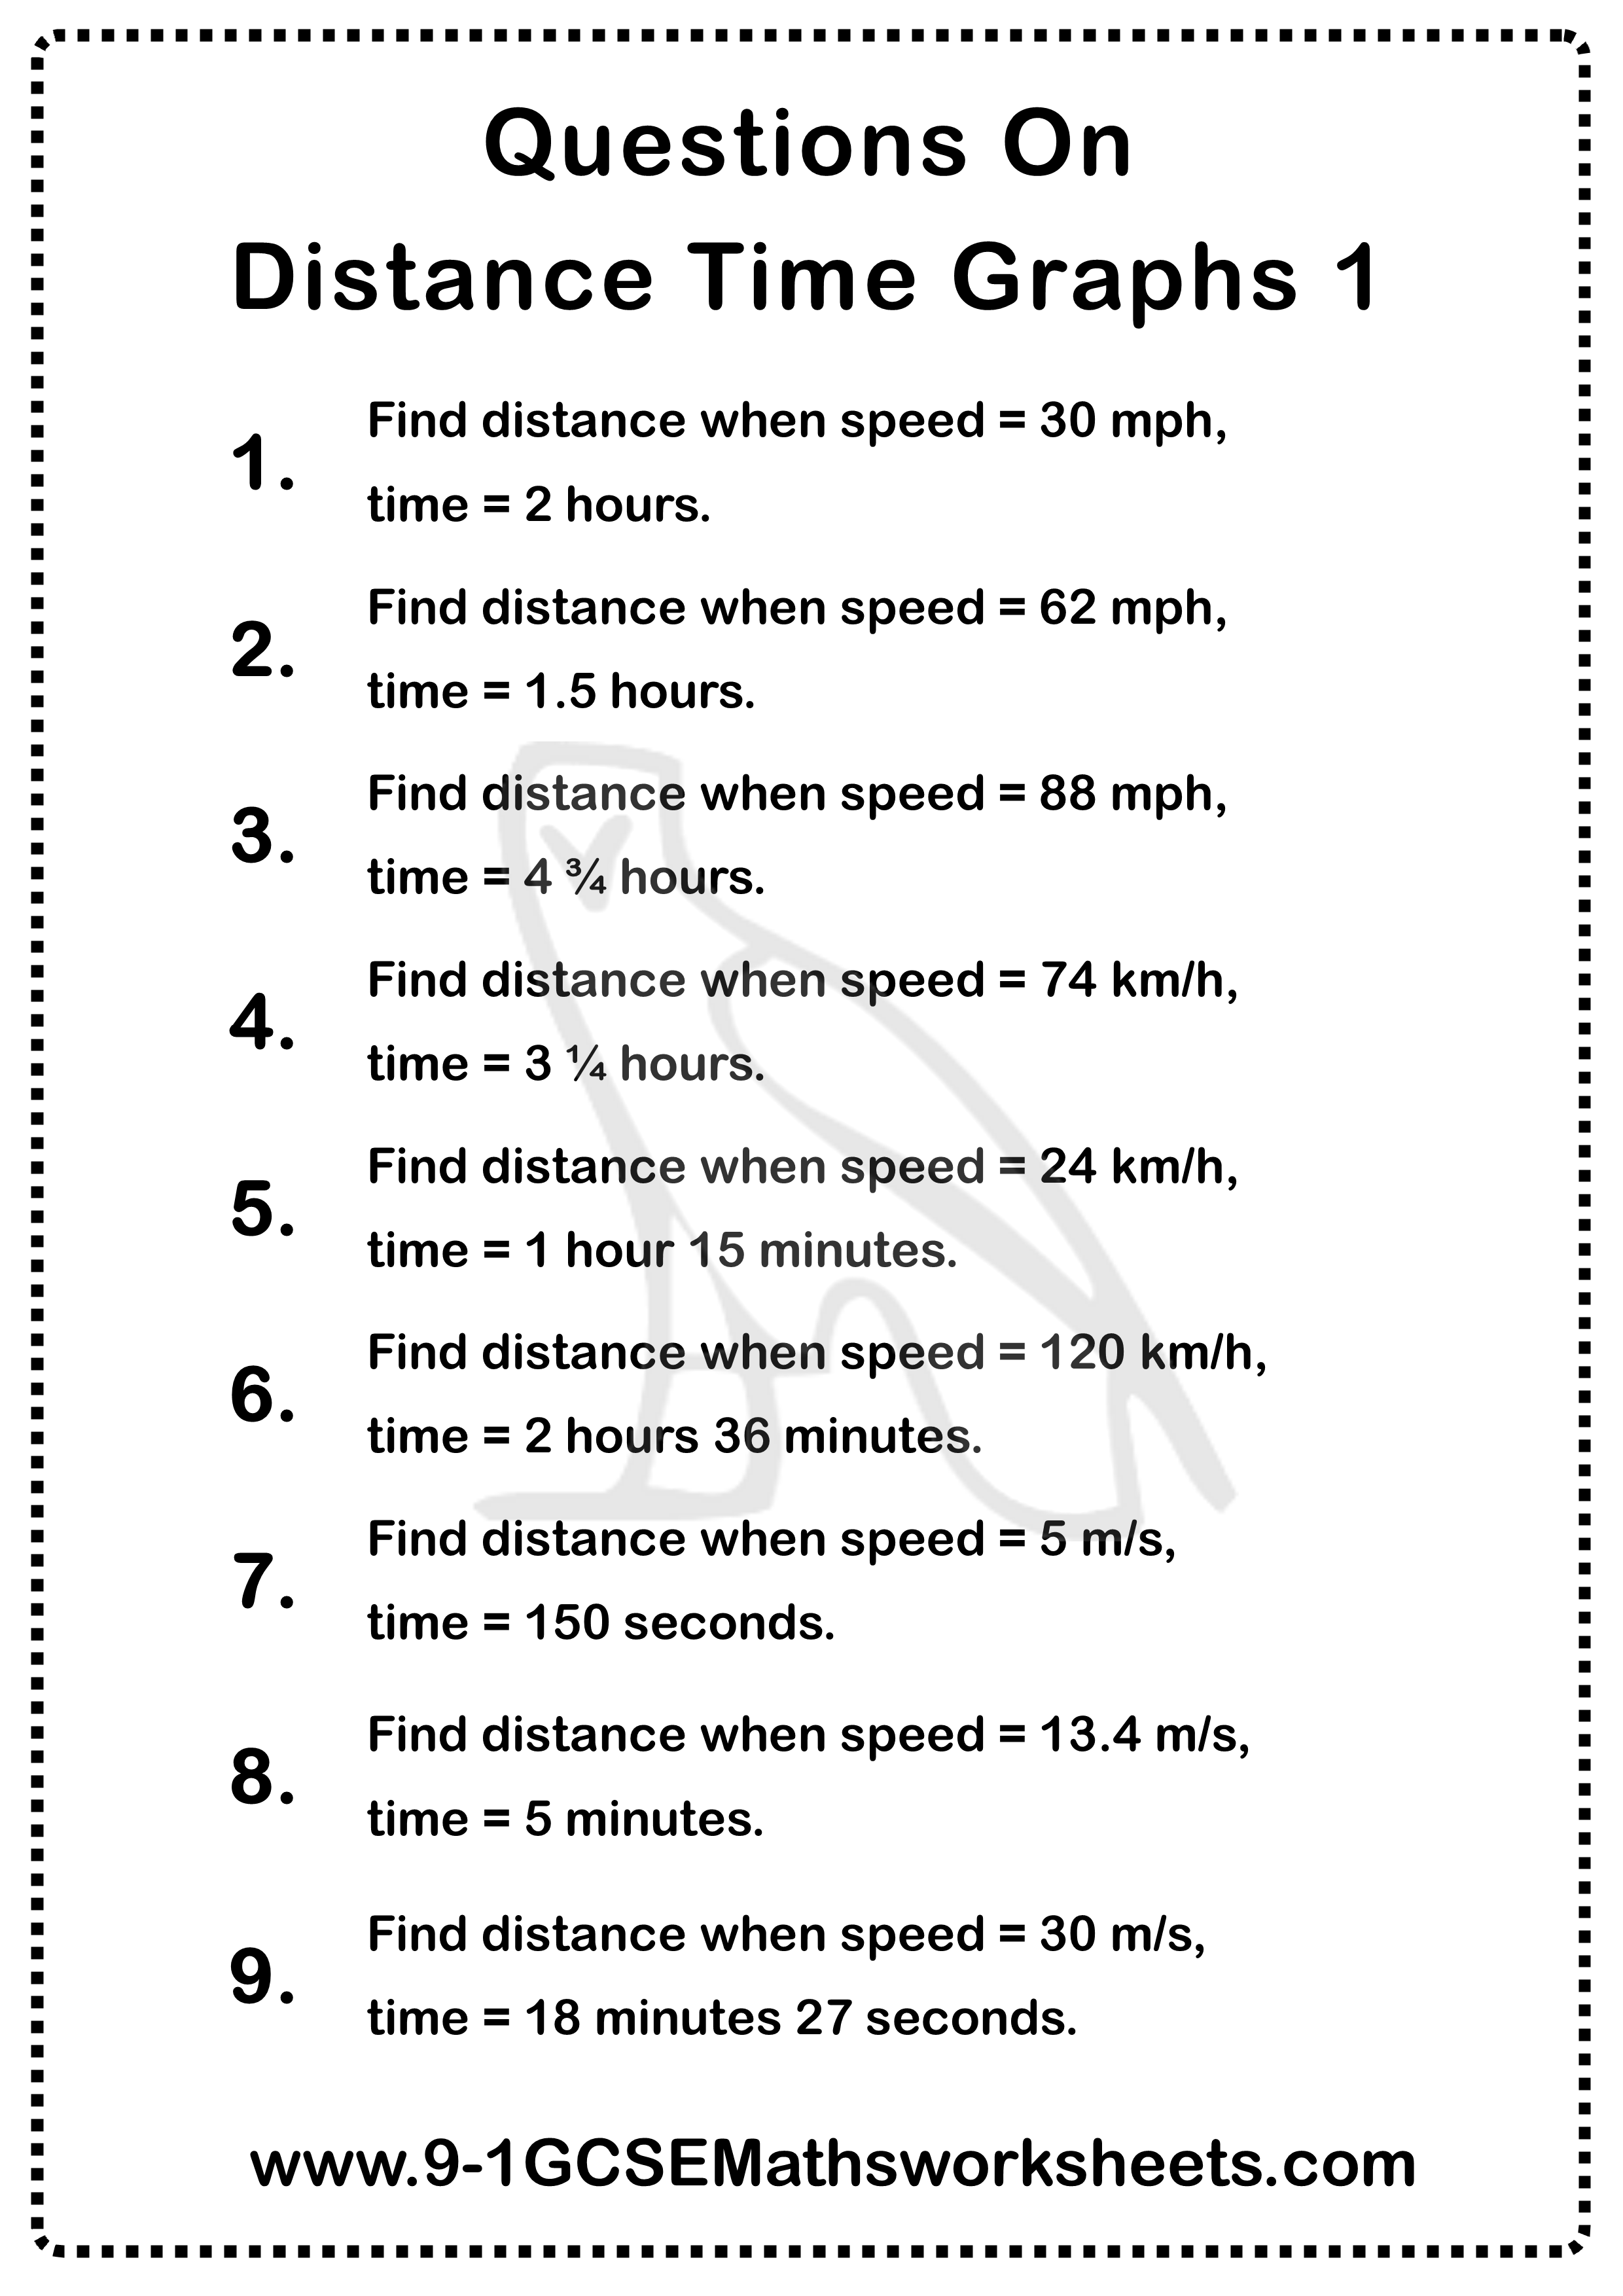 Distance Time Graphs Worksheet 1